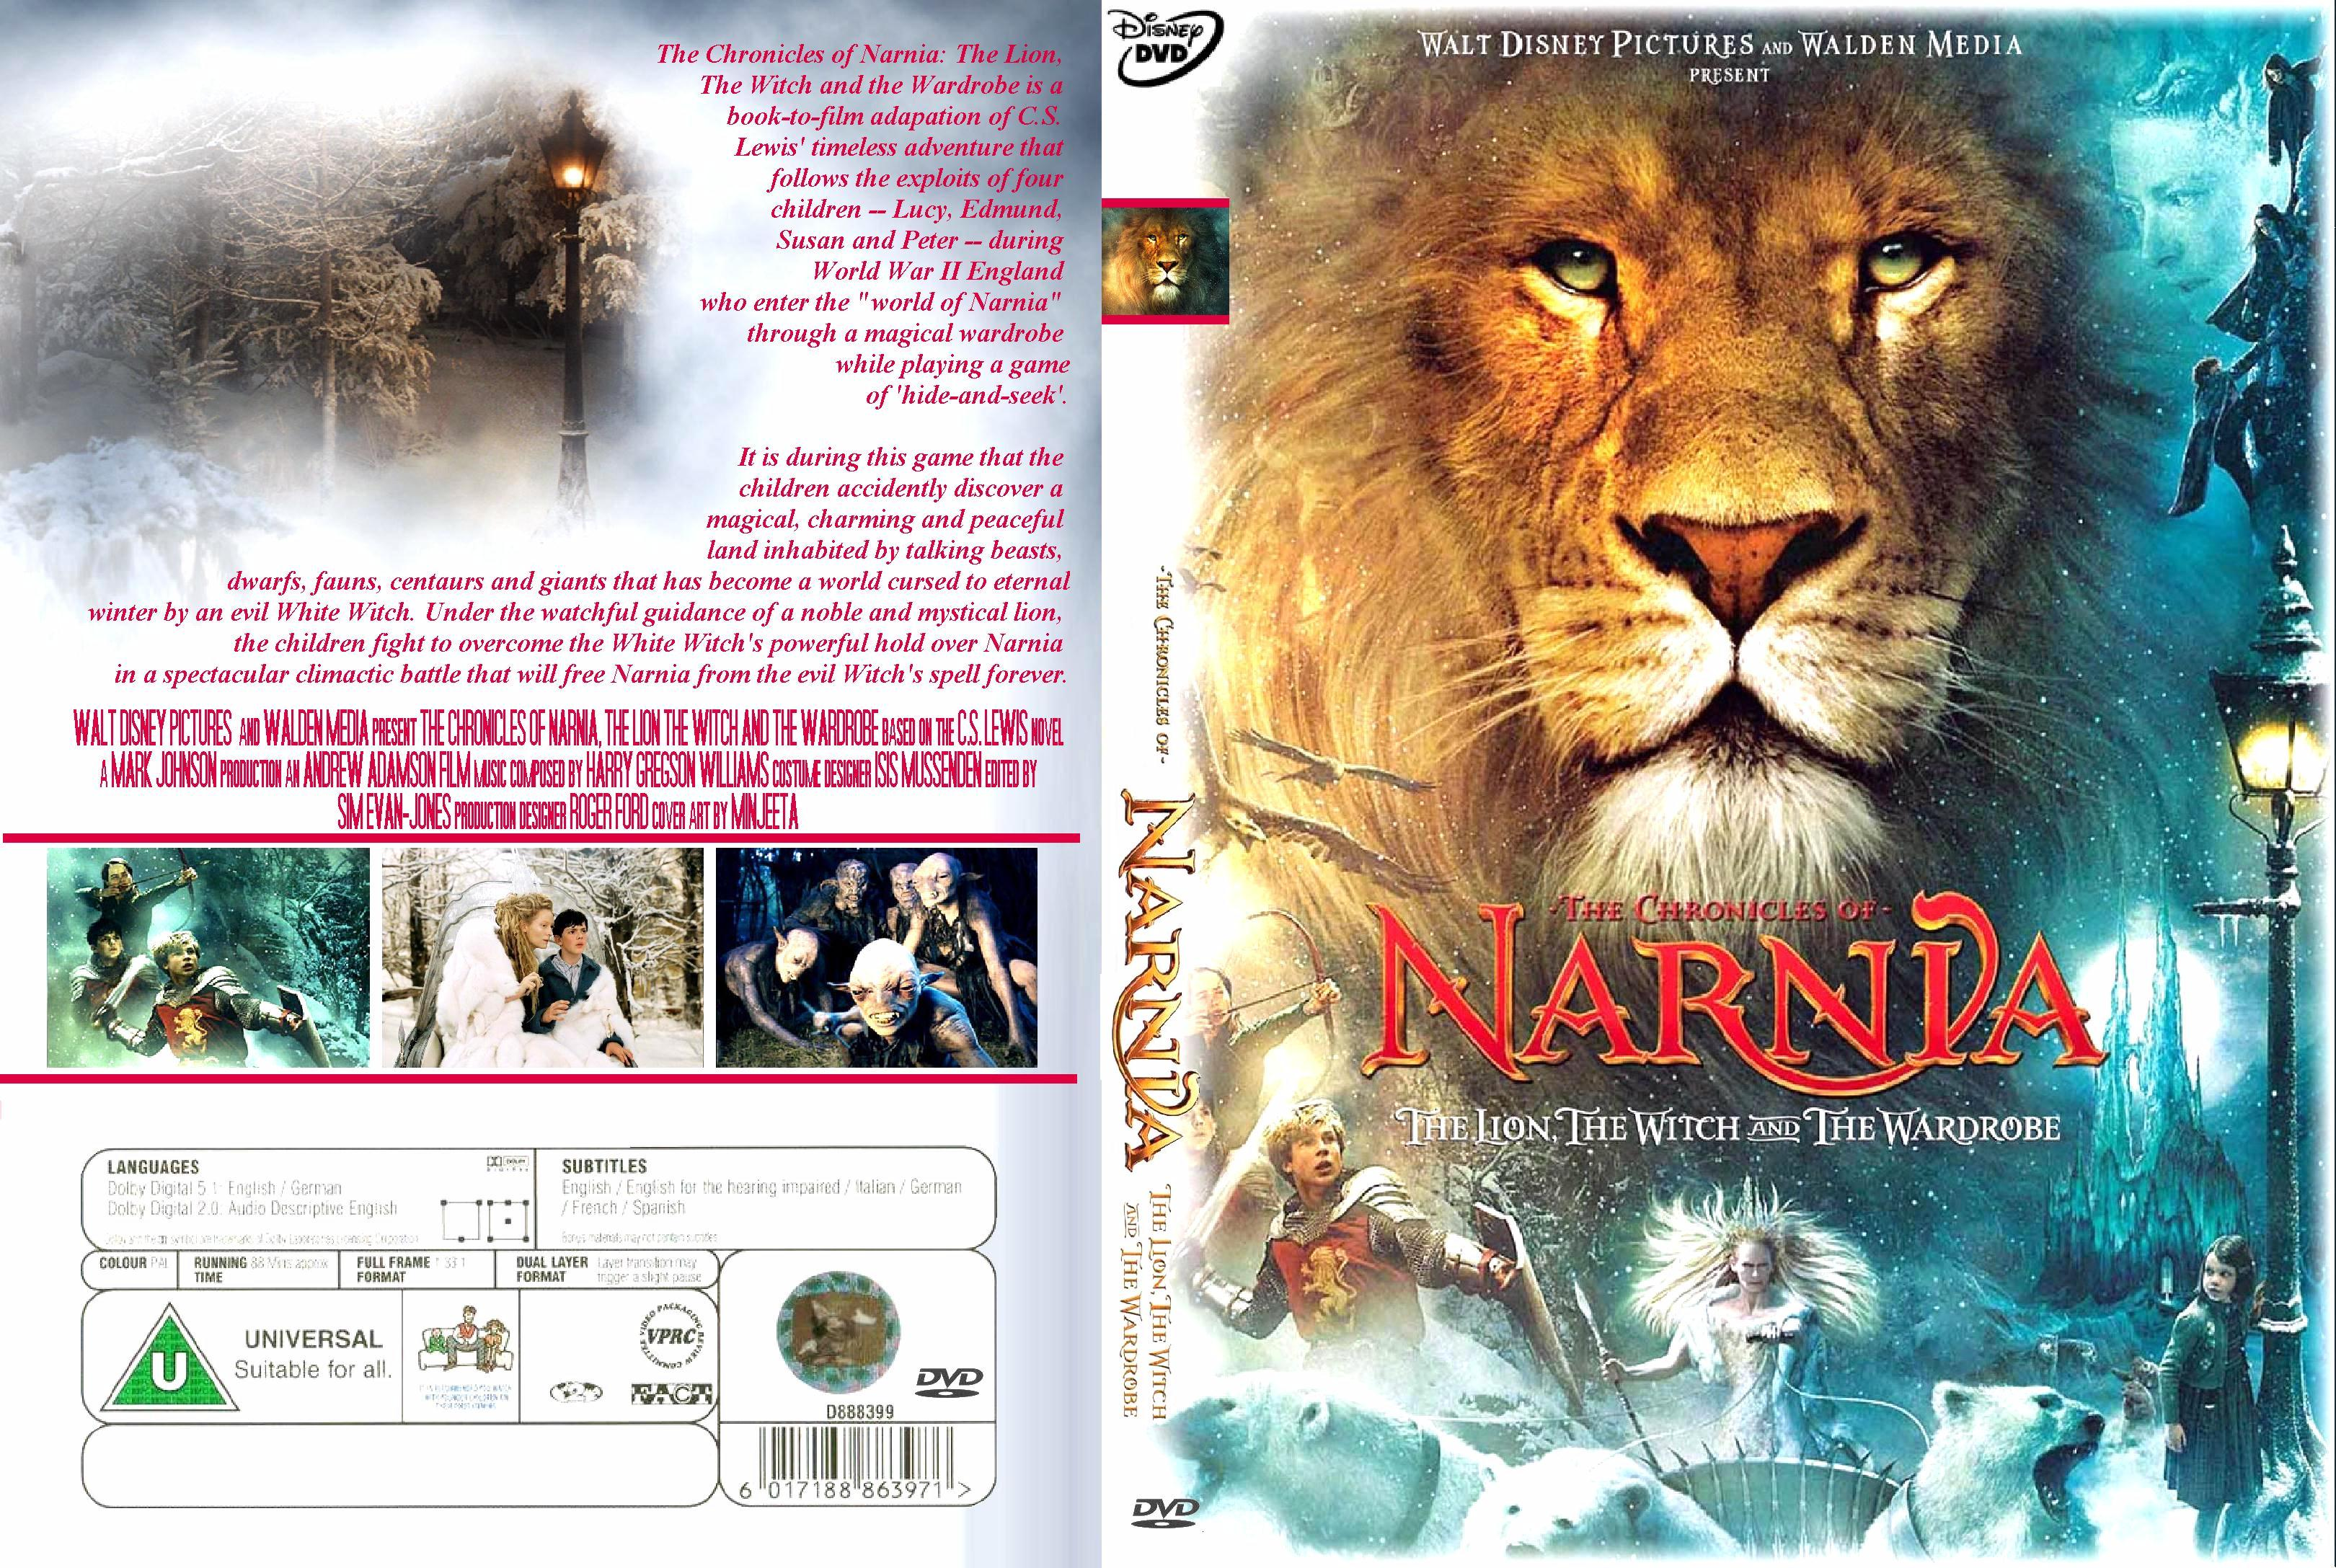 an analysis of the story of the book the chronicles of narnia the lion the witch and the wardrobe by Lucy finds a way into the magical world of narnia through the wardrobethe fall into the other world happens in stages in the lion, the witch, and the wardrobe first lucy finds her way throug three-act plot analysis.